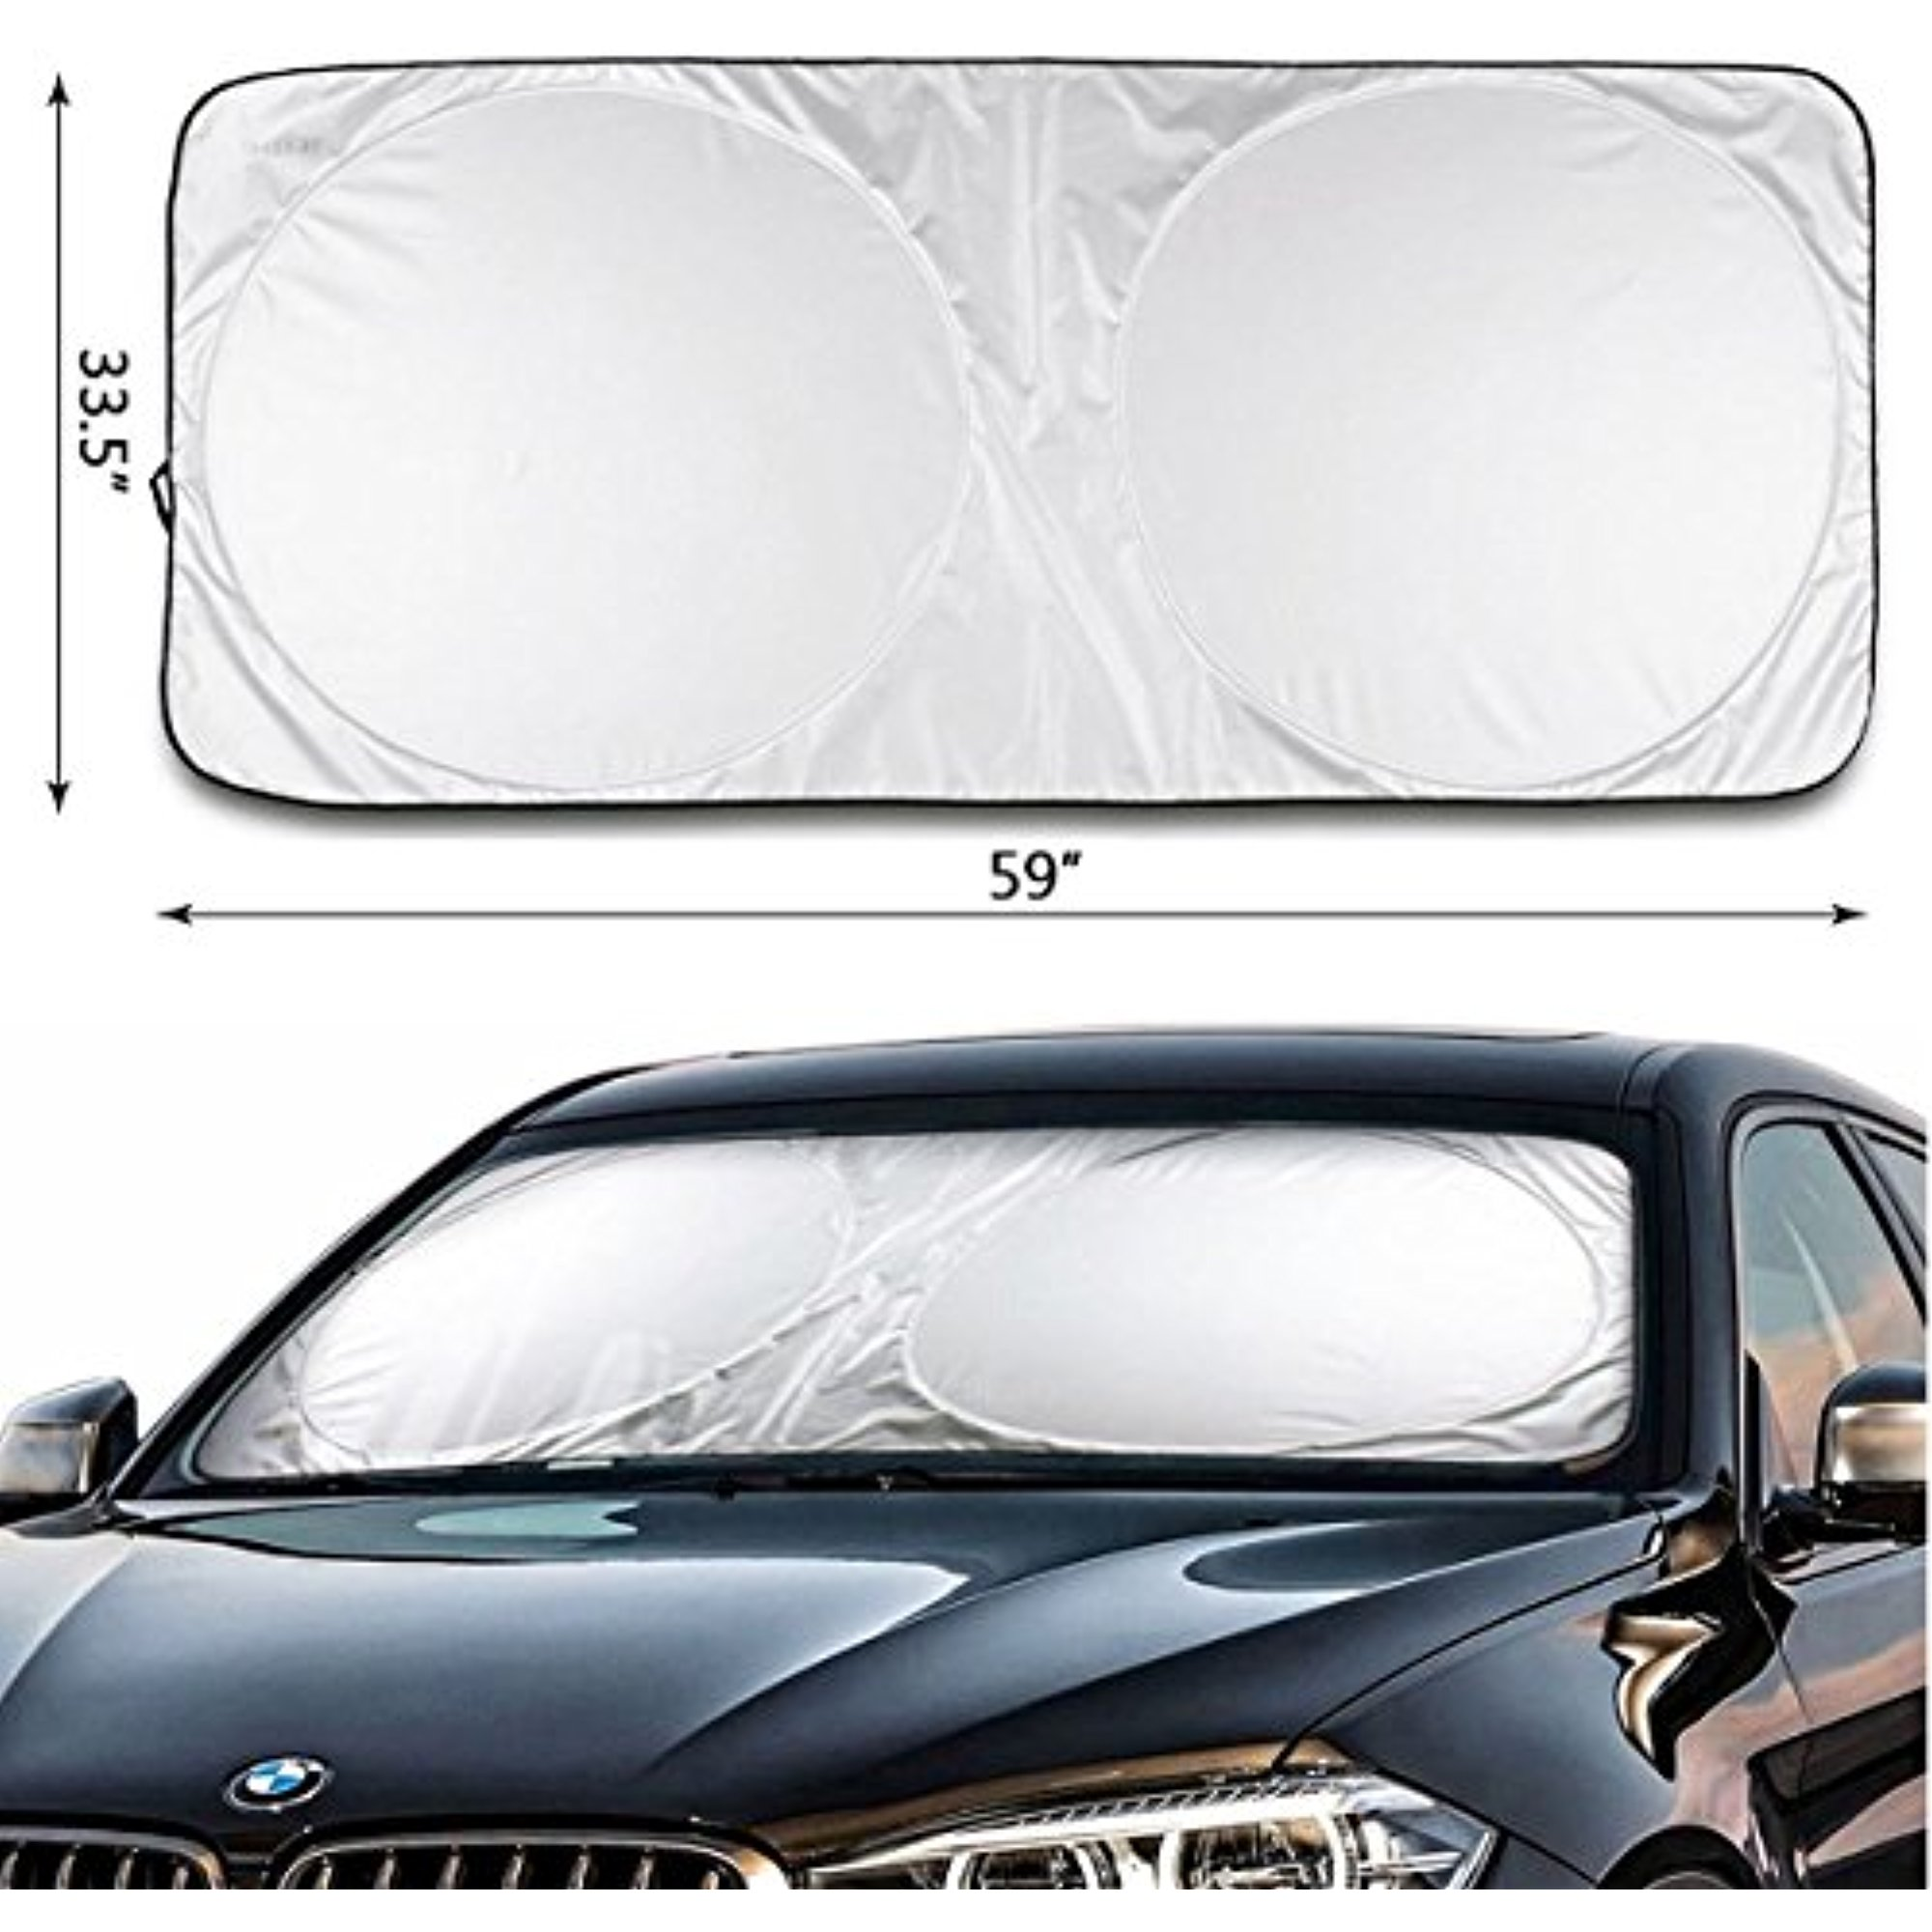 "iClover Car Window Shade Sunshade Jumbo-Shields Vehicle From Pop Up Style UV Protector Retractable Folding Outdoor Car Windshield Blinds(59""x33"")"